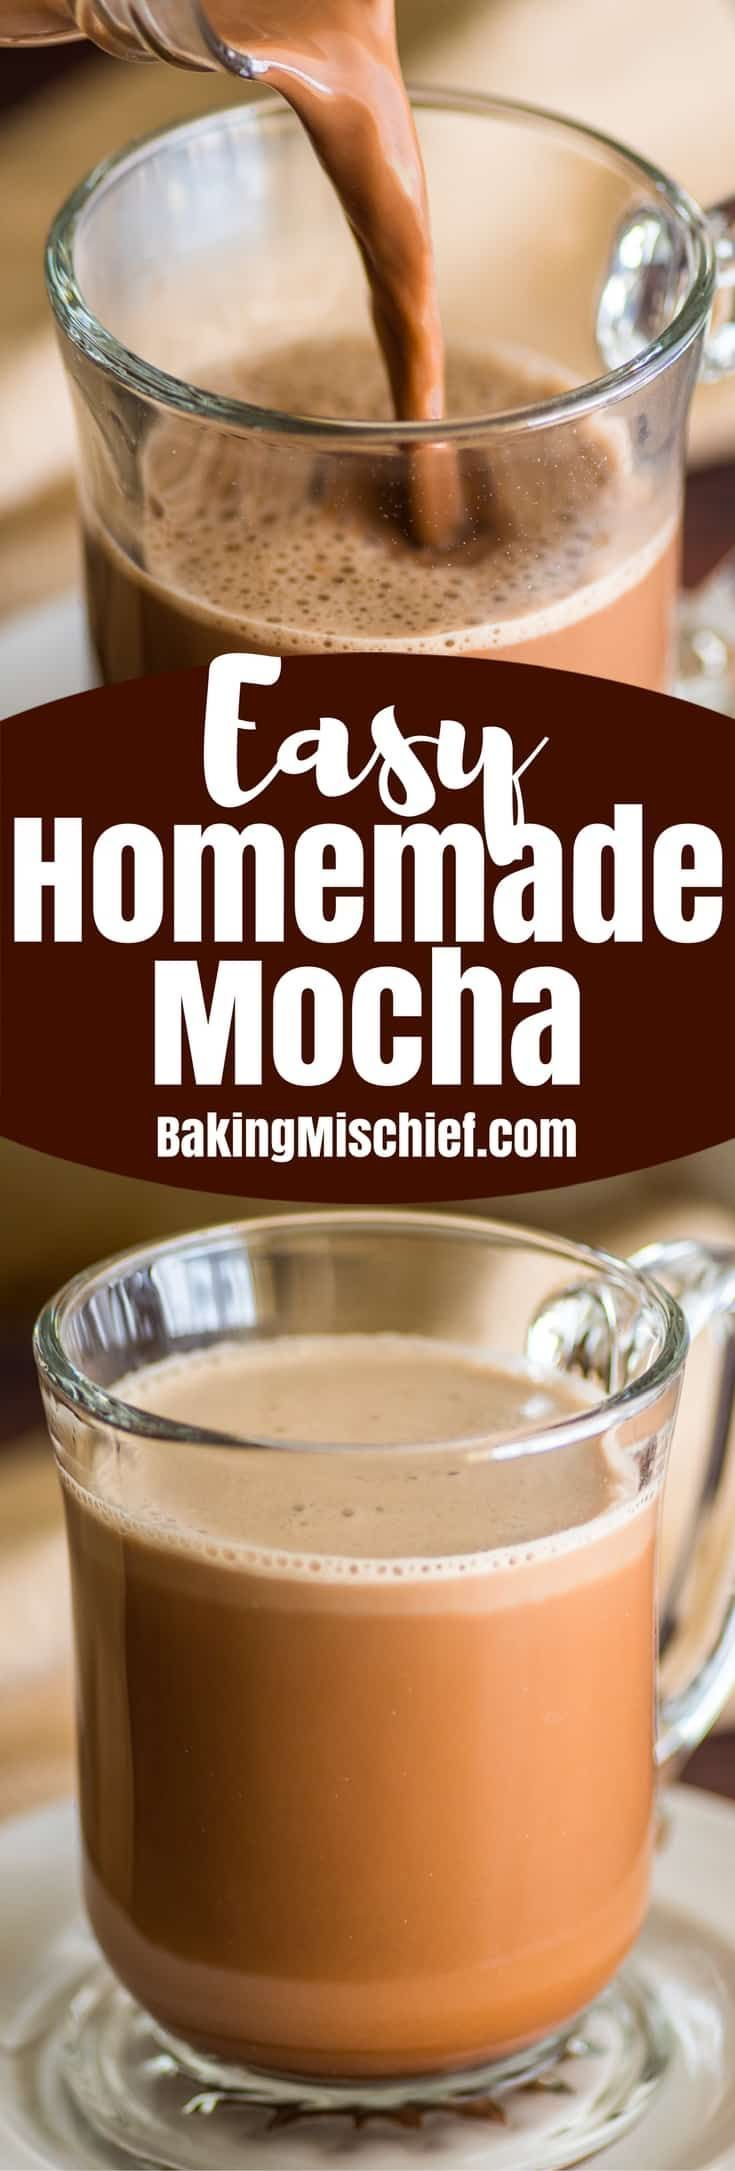 How to make an easy and delicious homemade mocha no